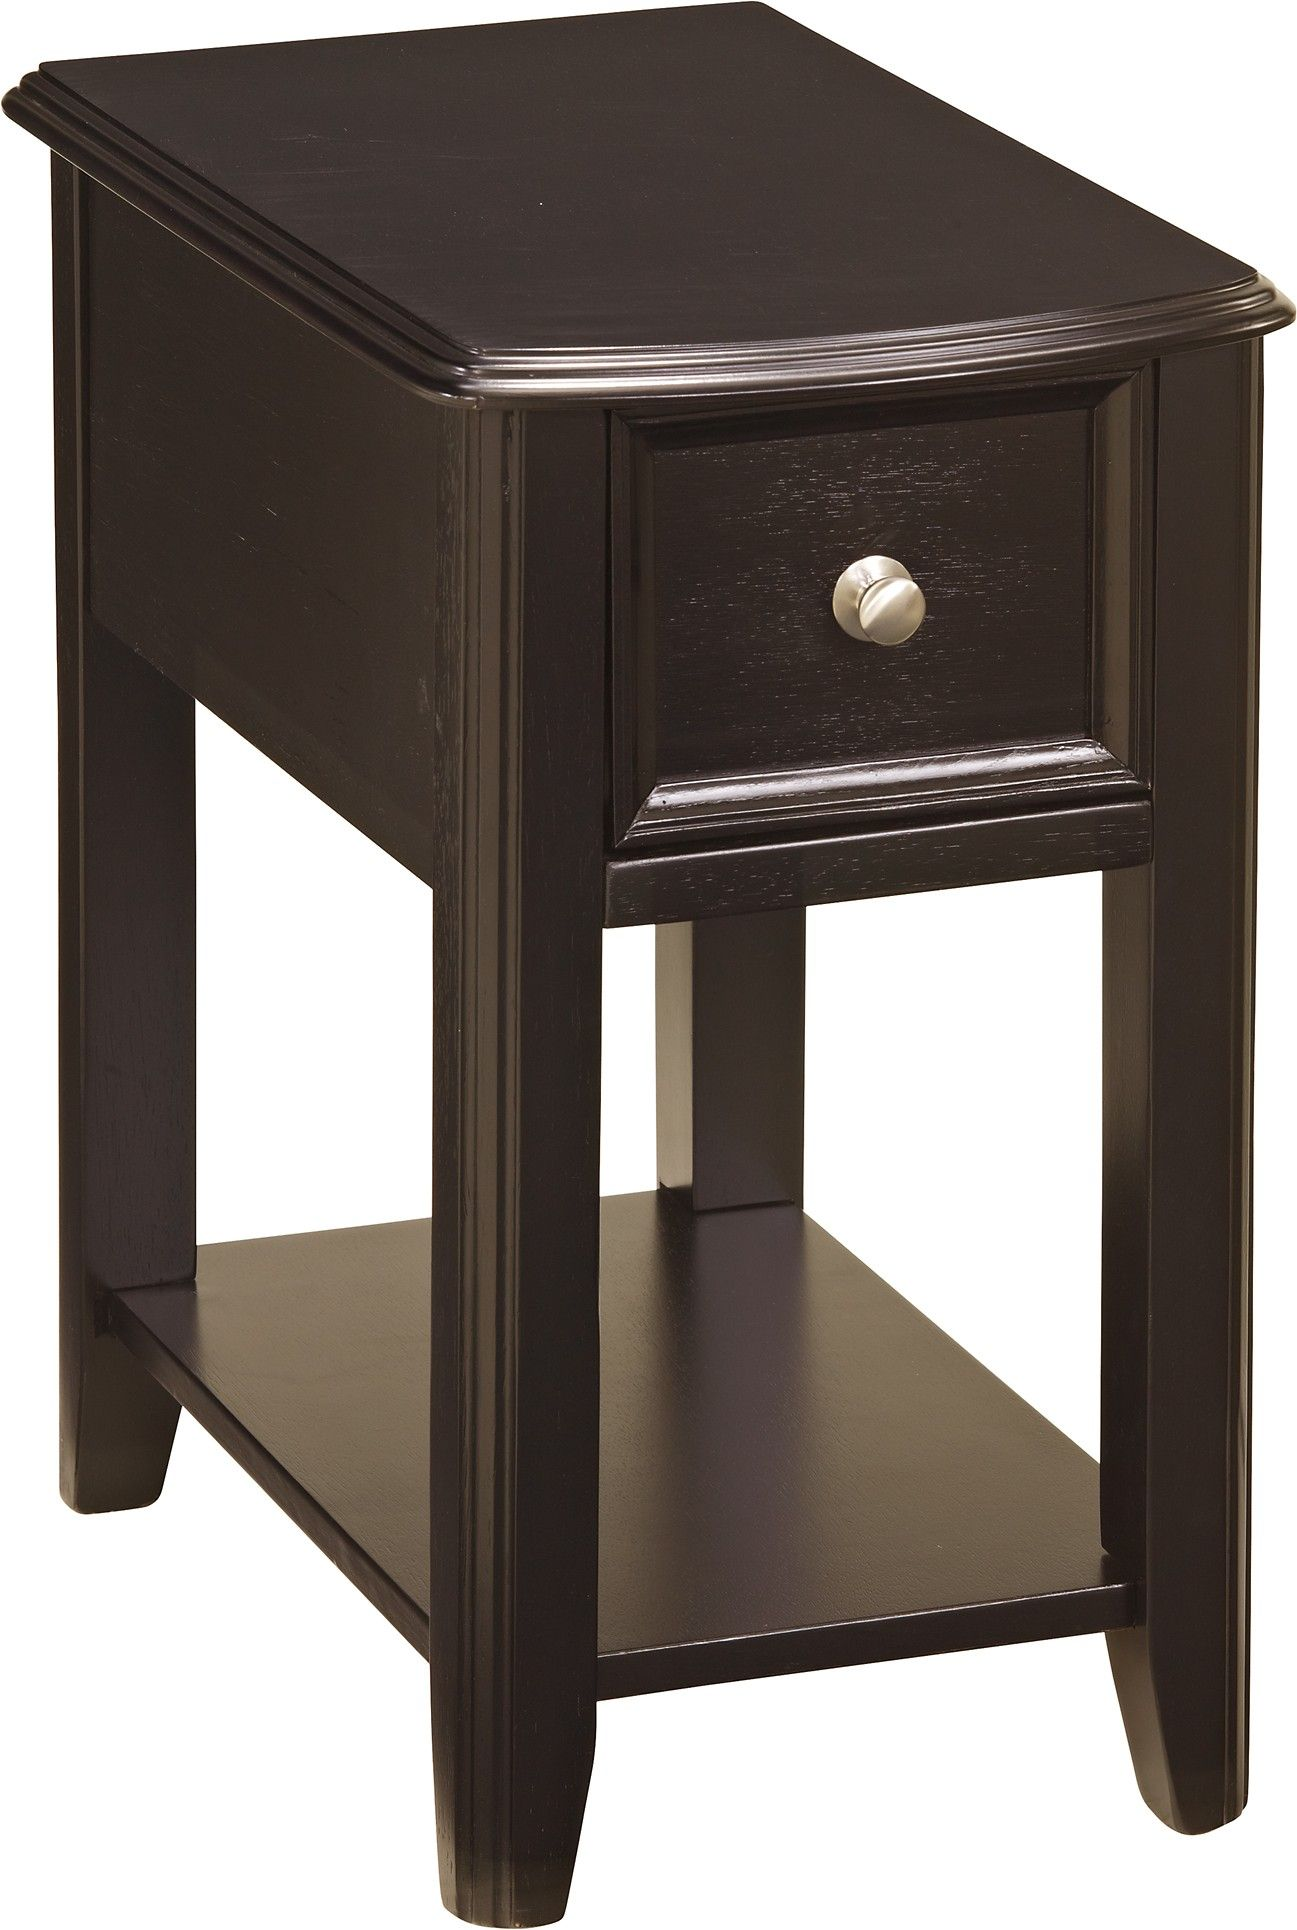 ashley furniture carlyle chairside table. ashley breegin t007-371 signature design chair side end table - this chairside furniture carlyle